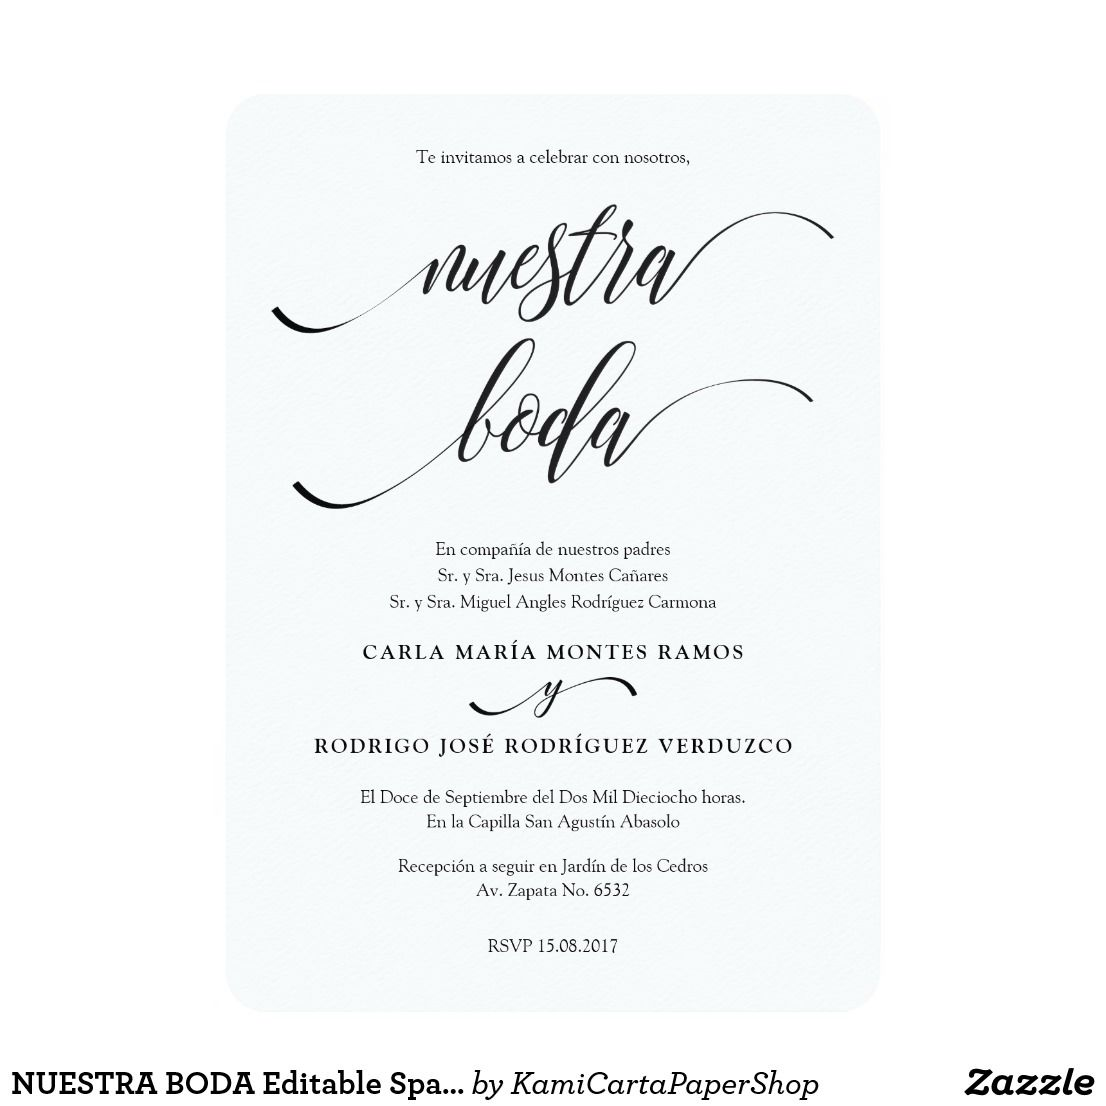 Nuestra Boda Editable Spanish Wedding Invitation: 1950s Formal Wedding Invitation Wording At Reisefeber.org